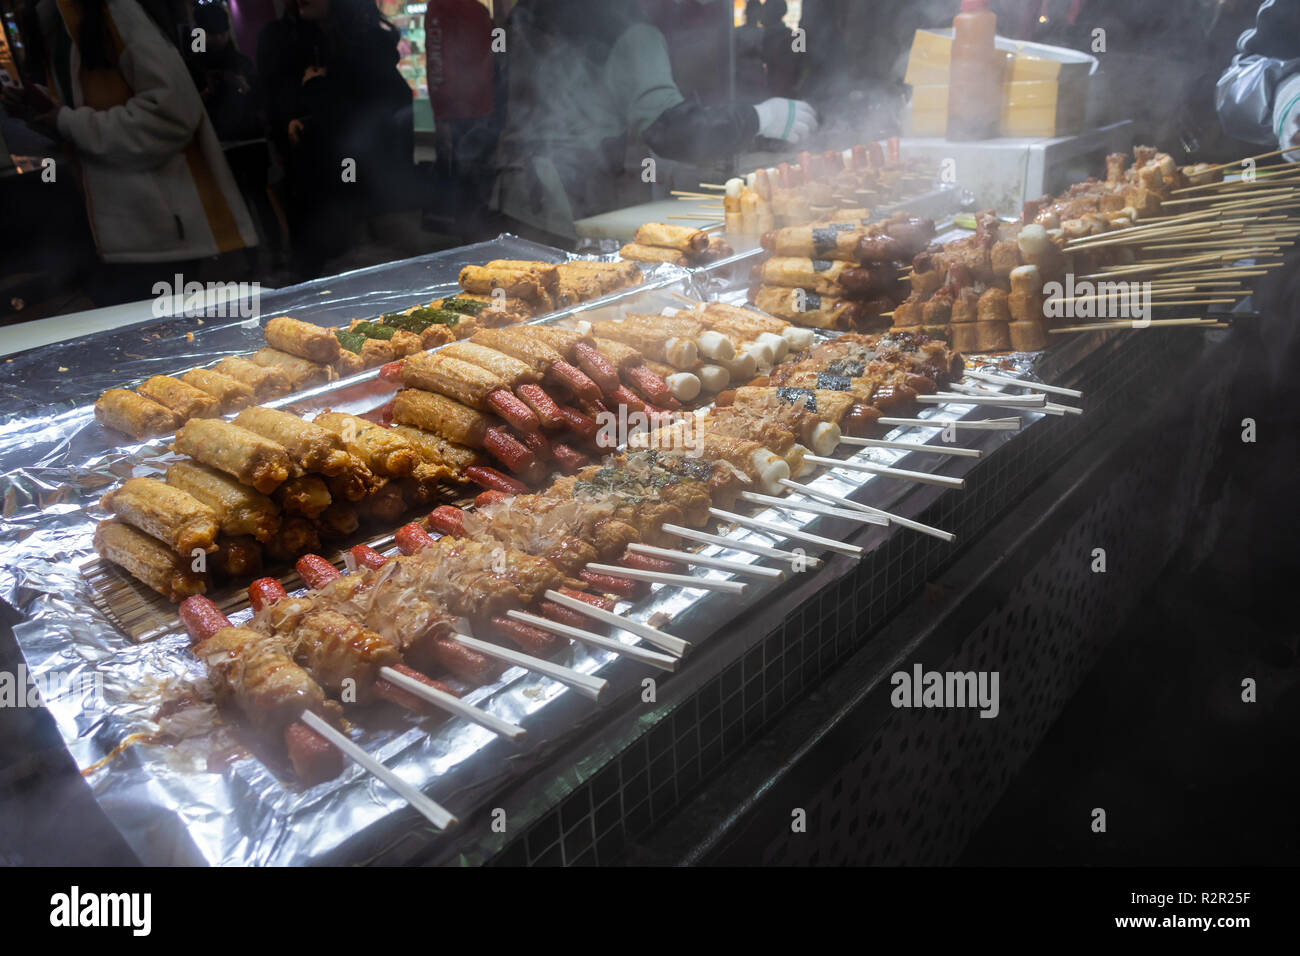 Street Food On Wooden Sticks Or Skewers On A Stall In Myeongdon In